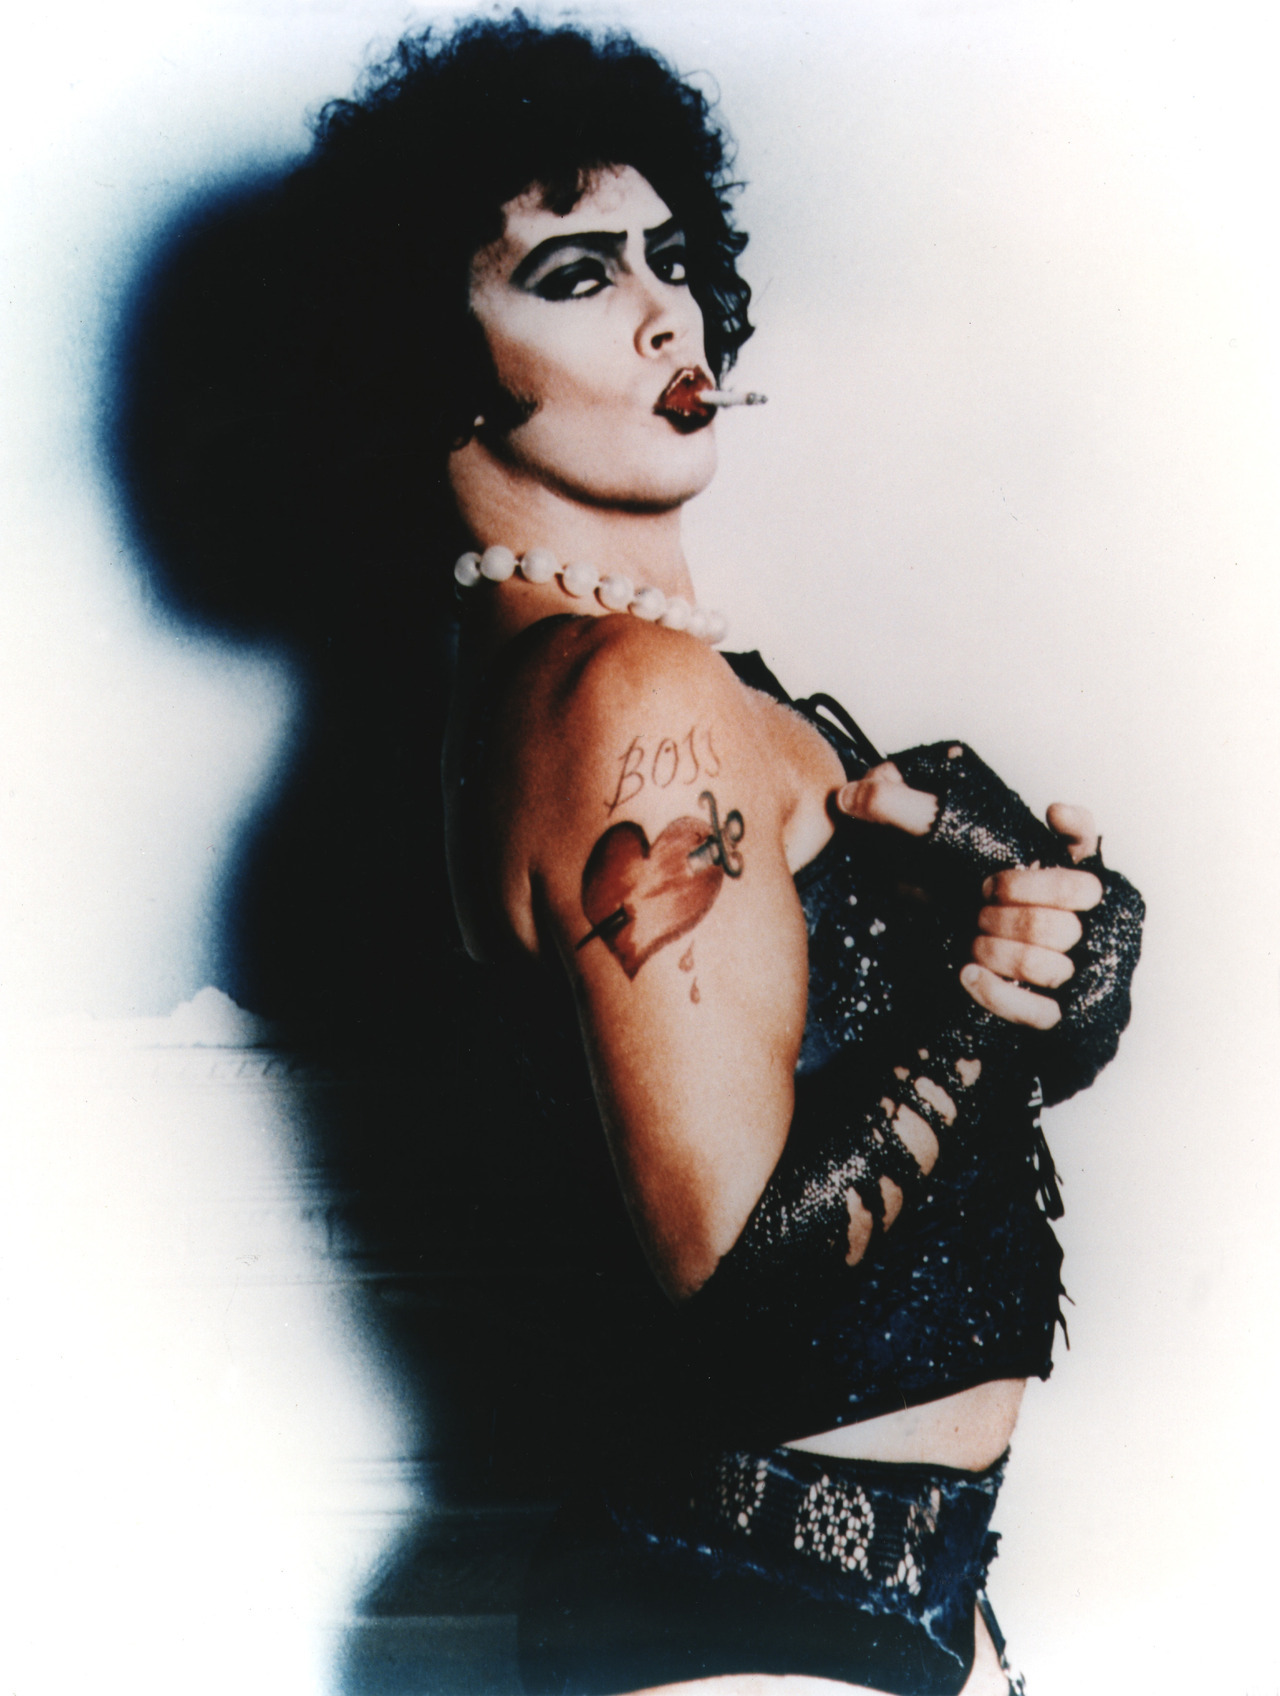 Frank-N-Furter photographed by Mick Rock